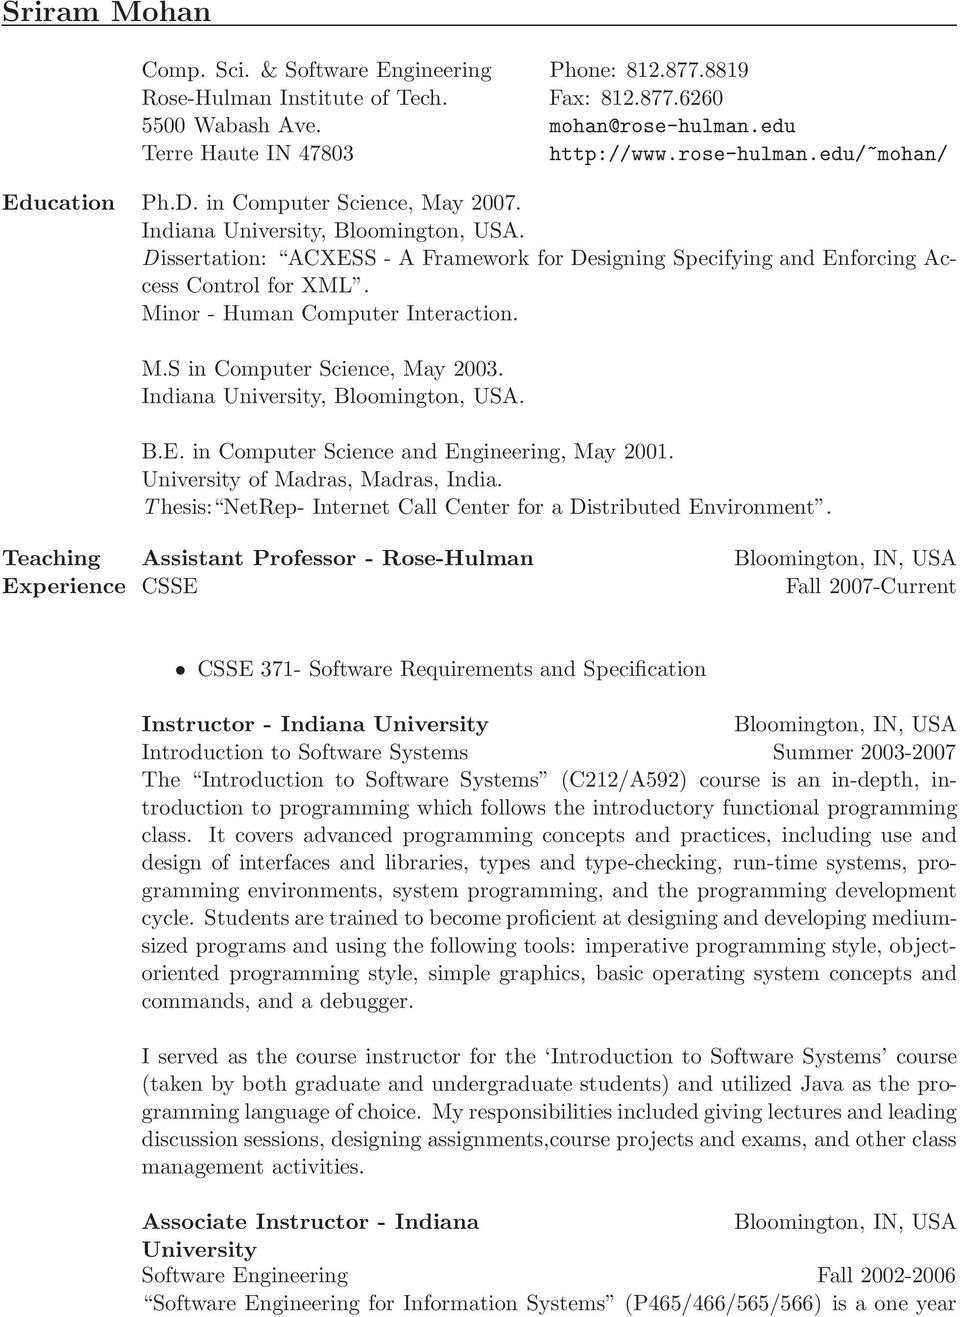 Minor - Human Computer Interaction. M.S in Computer Science, May 2003. Indiana University, Bloomington, USA. B.E. in Computer Science and Engineering, May 2001. University of Madras, Madras, India.